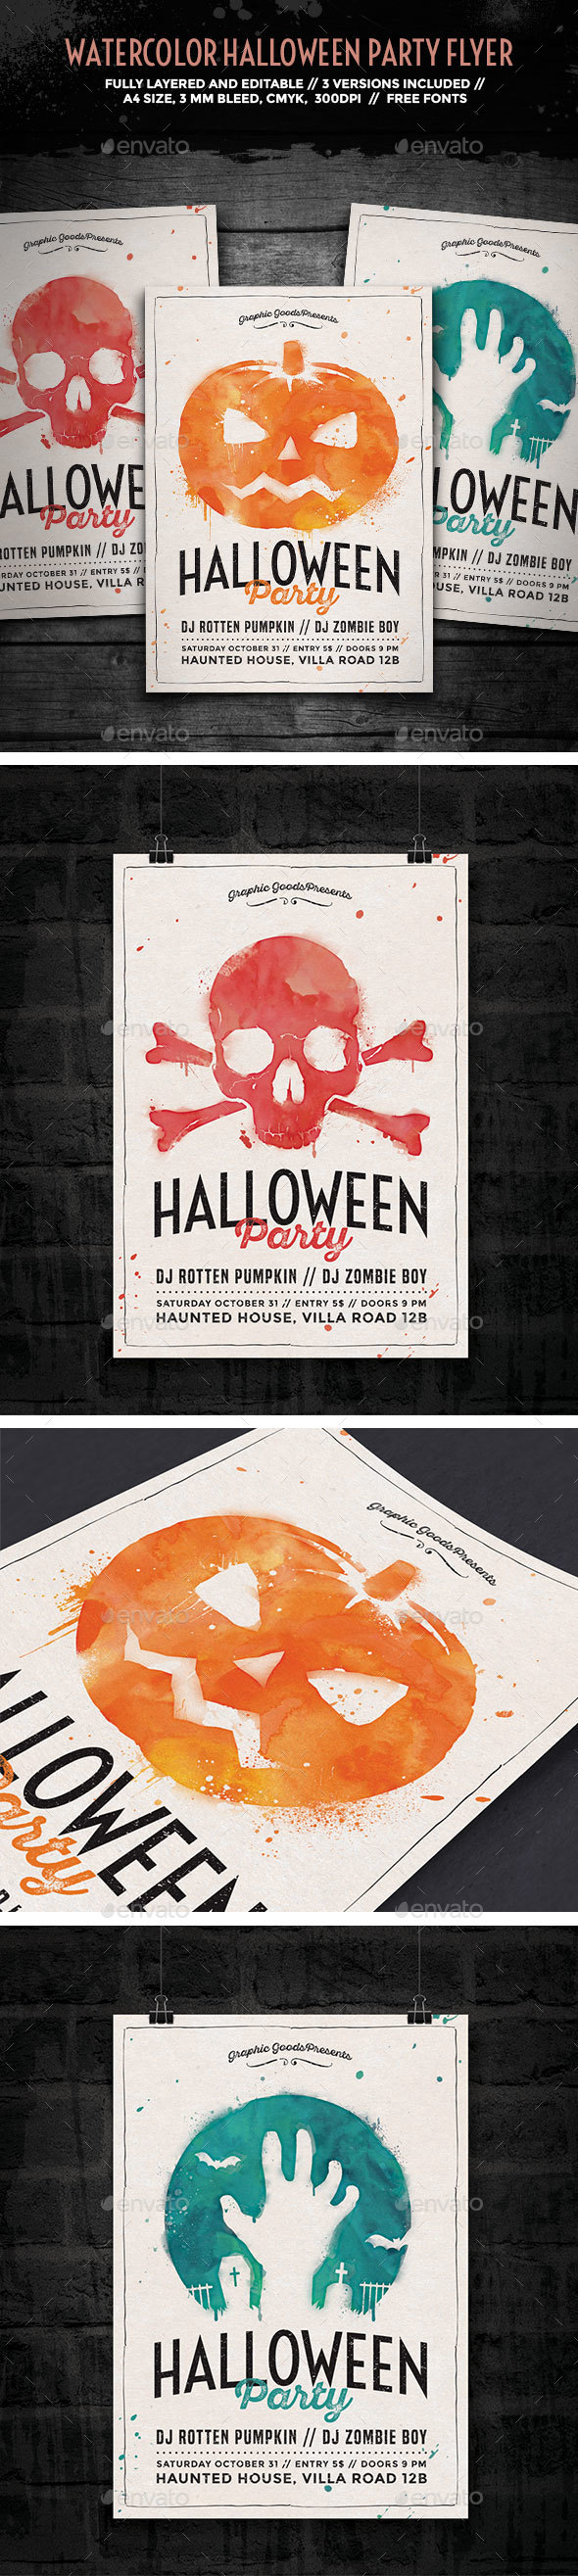 Watercolor Halloween Party Flyer - Holidays Events